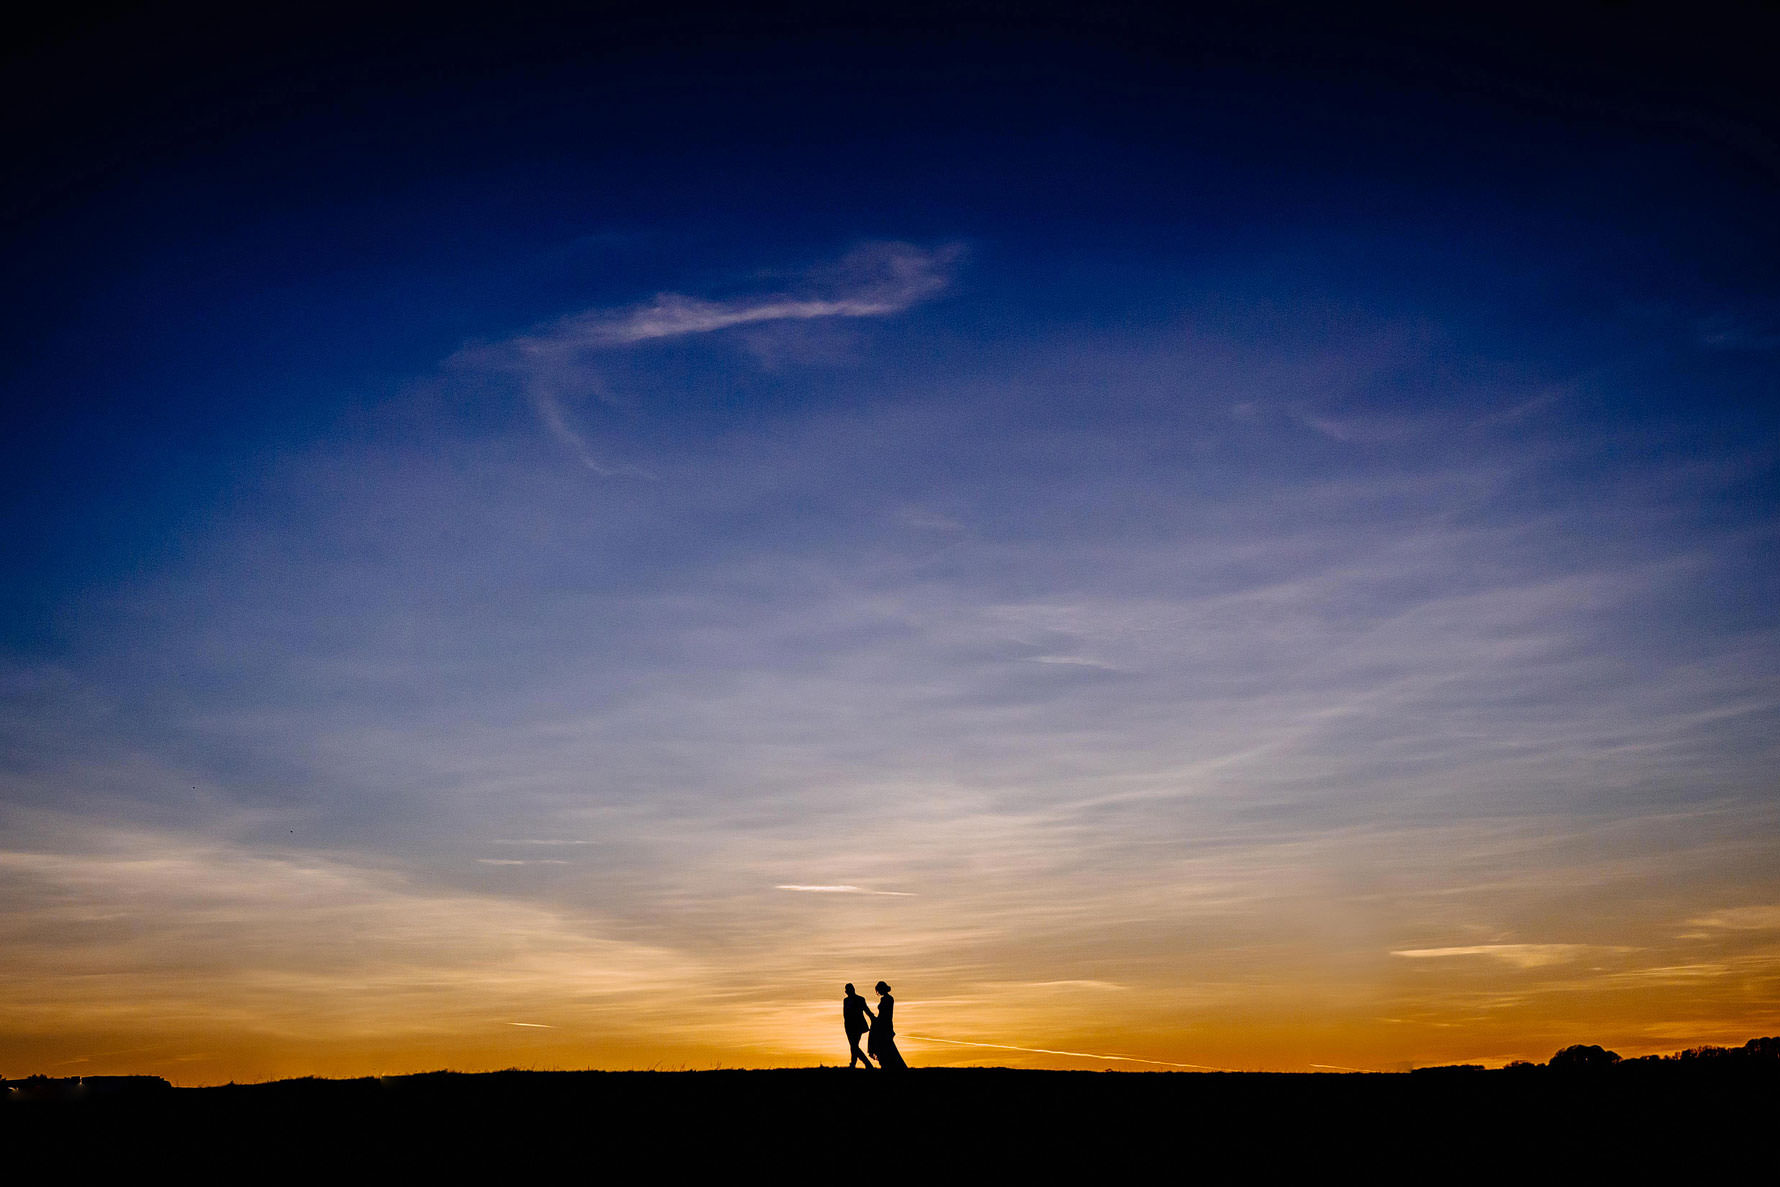 a beautiful sunset photography at dodford manor by Elliot w patching